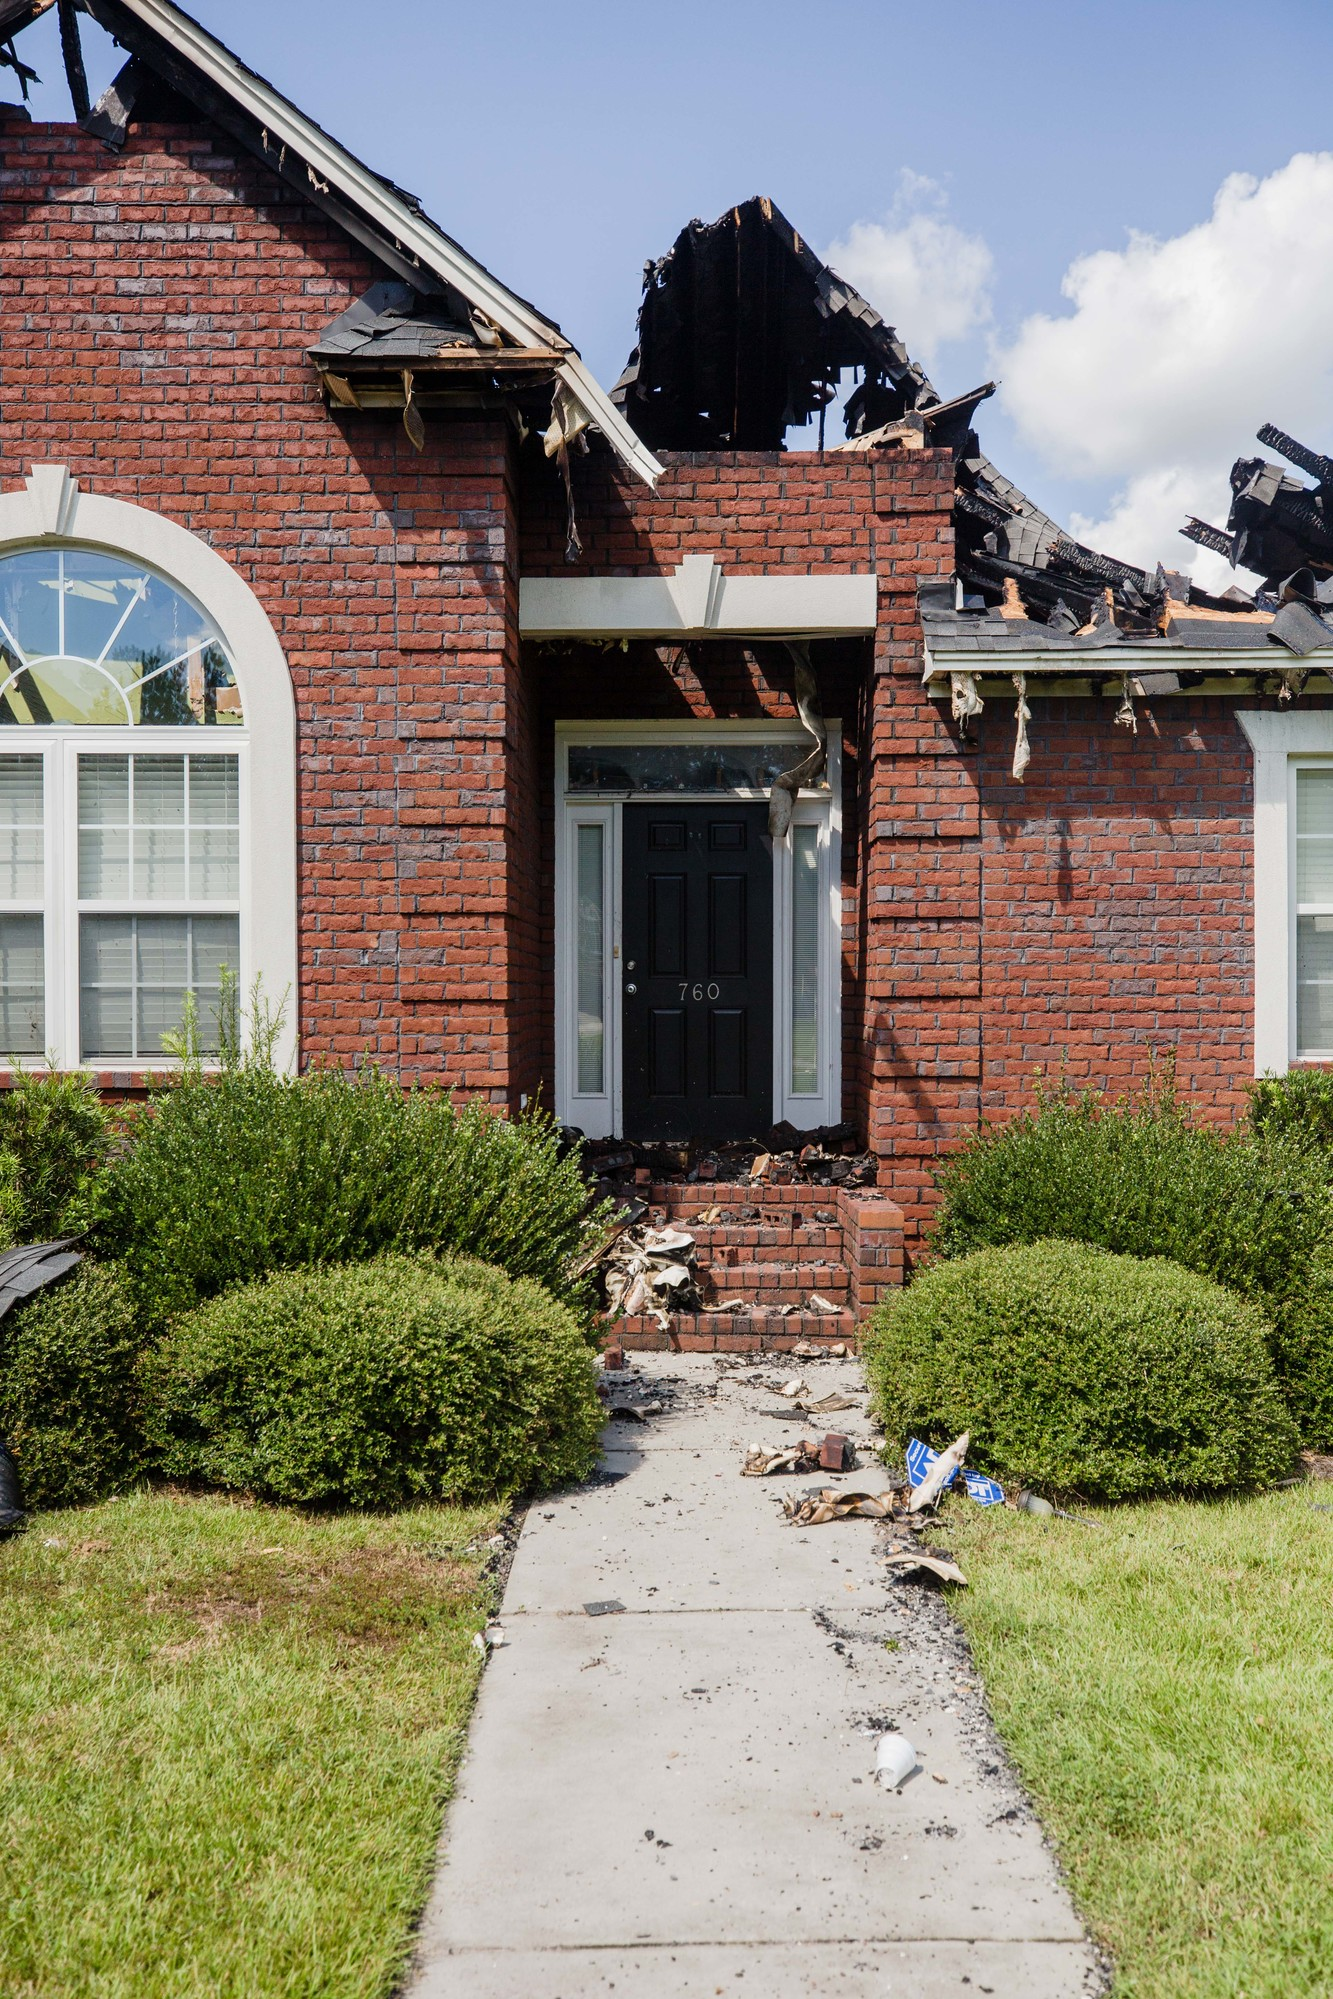 Sumter home destroyed by fire after lightning strike | The Sumter Item